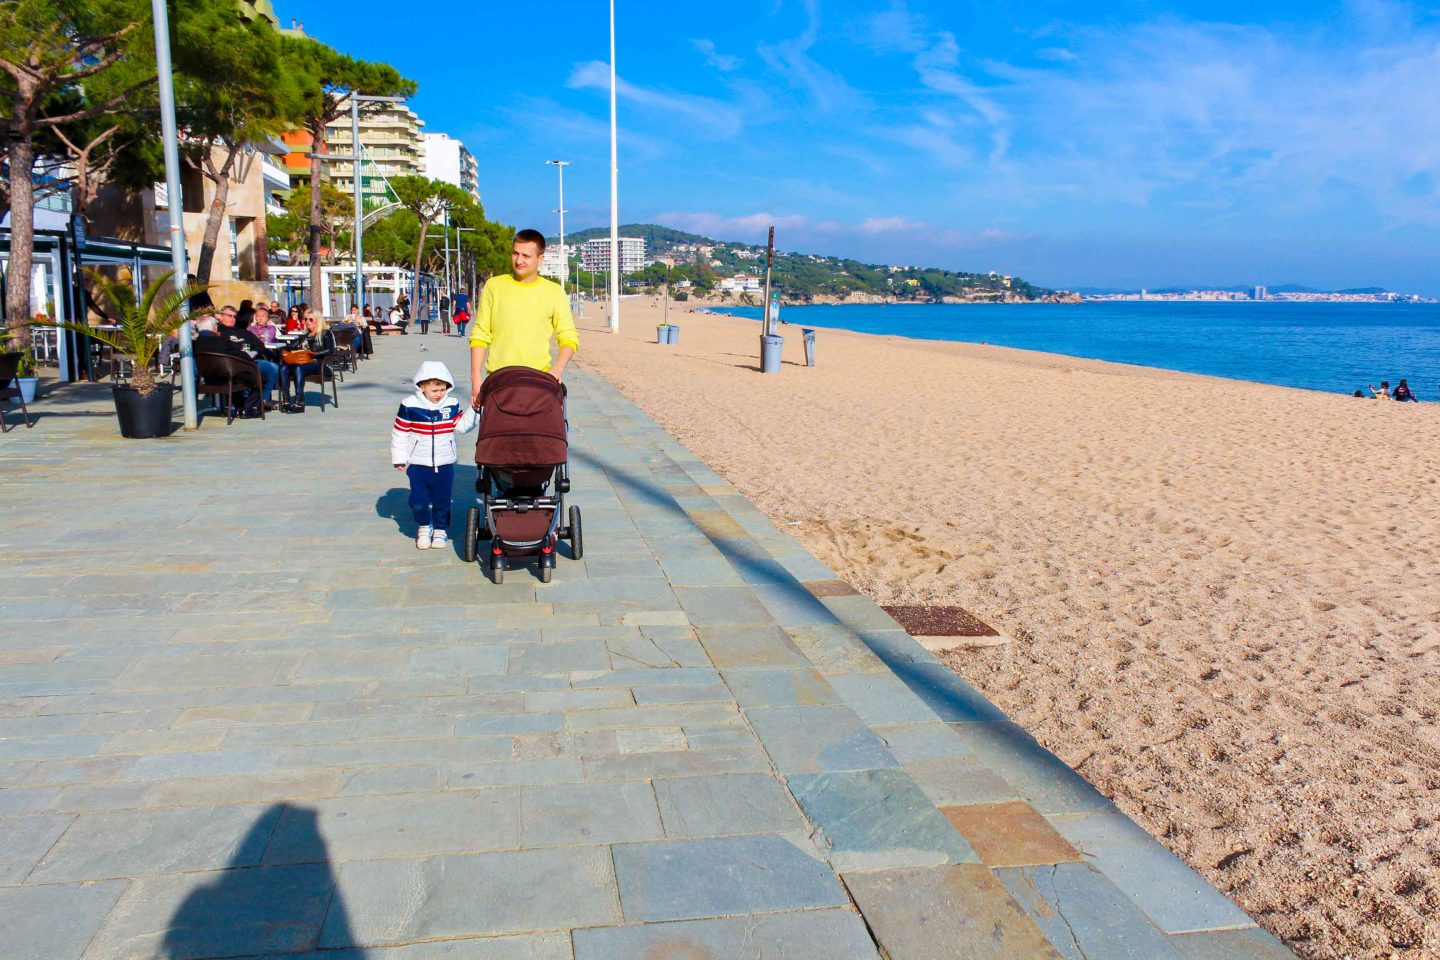 Platja d 39 aro a diamond of costa brava travel family blog - Cases platja d aro ...